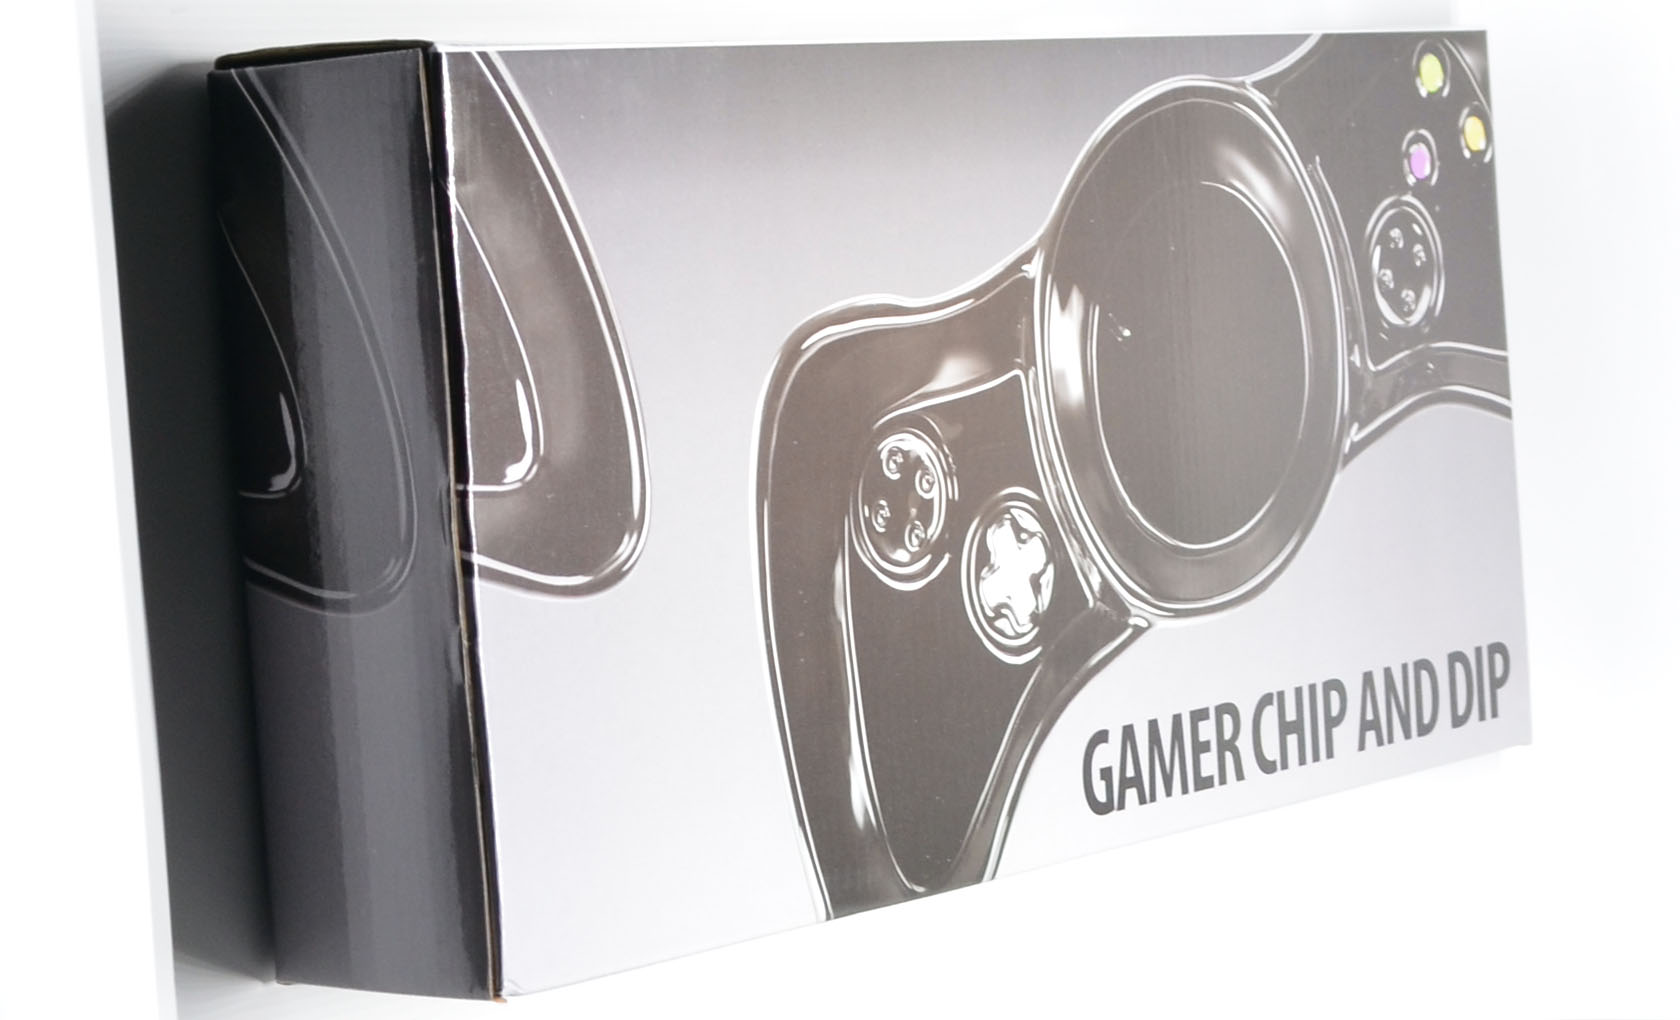 The box for the KOVOT Gamer Chip and Dip Dish.